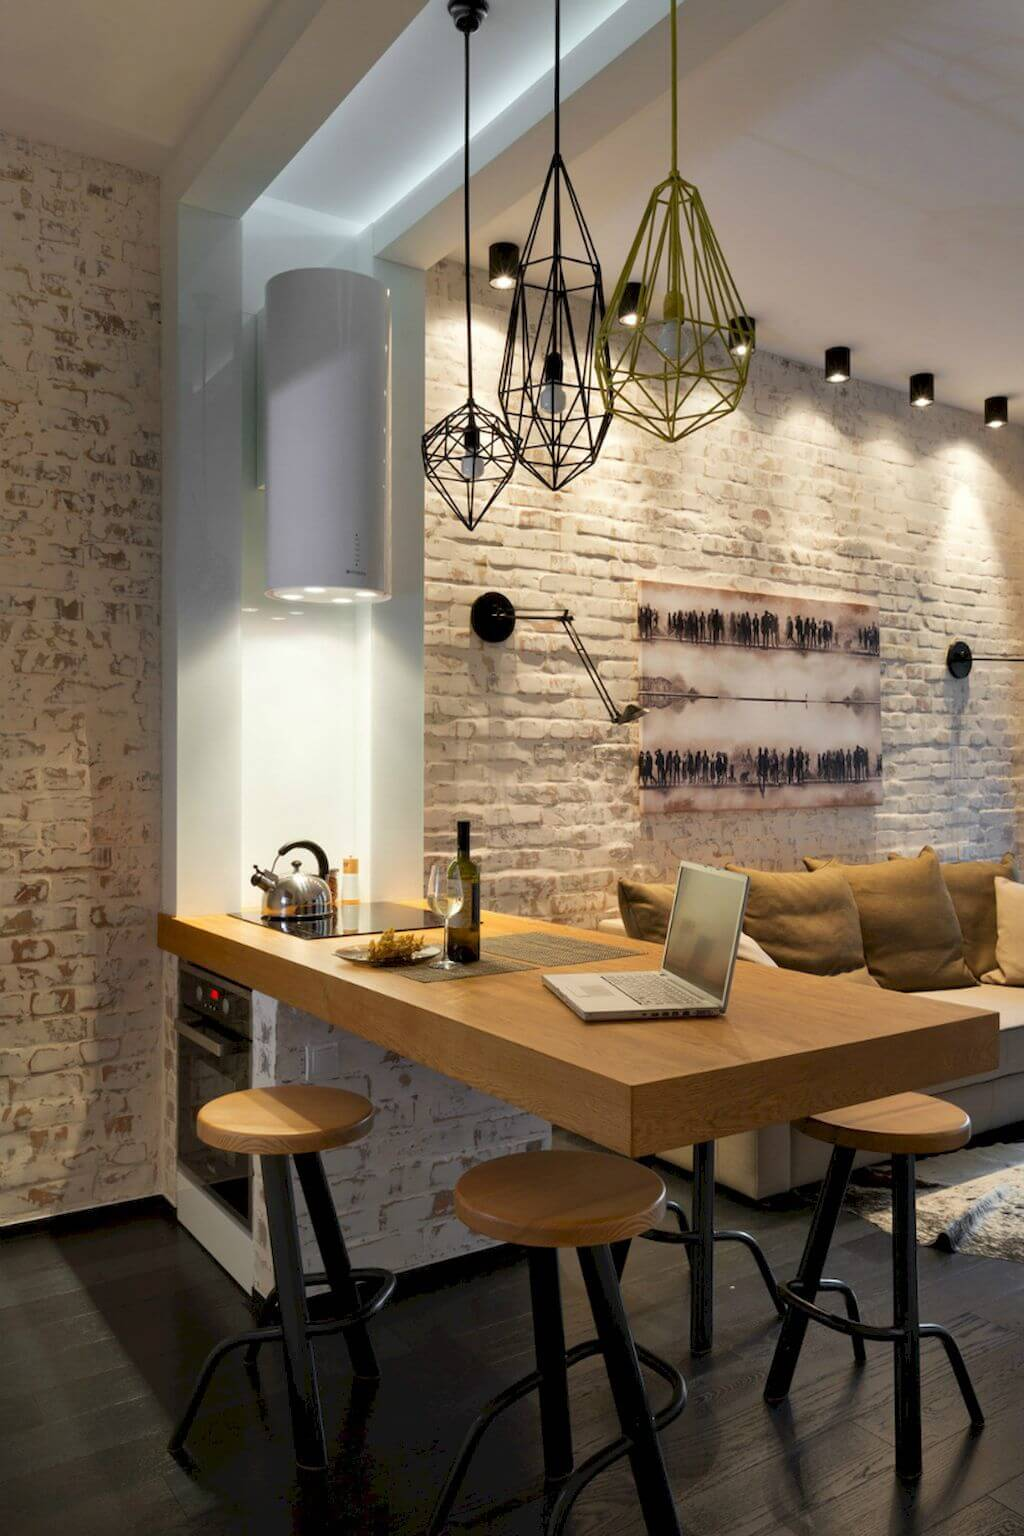 Exposed Brick and Industrial Light Fixtures